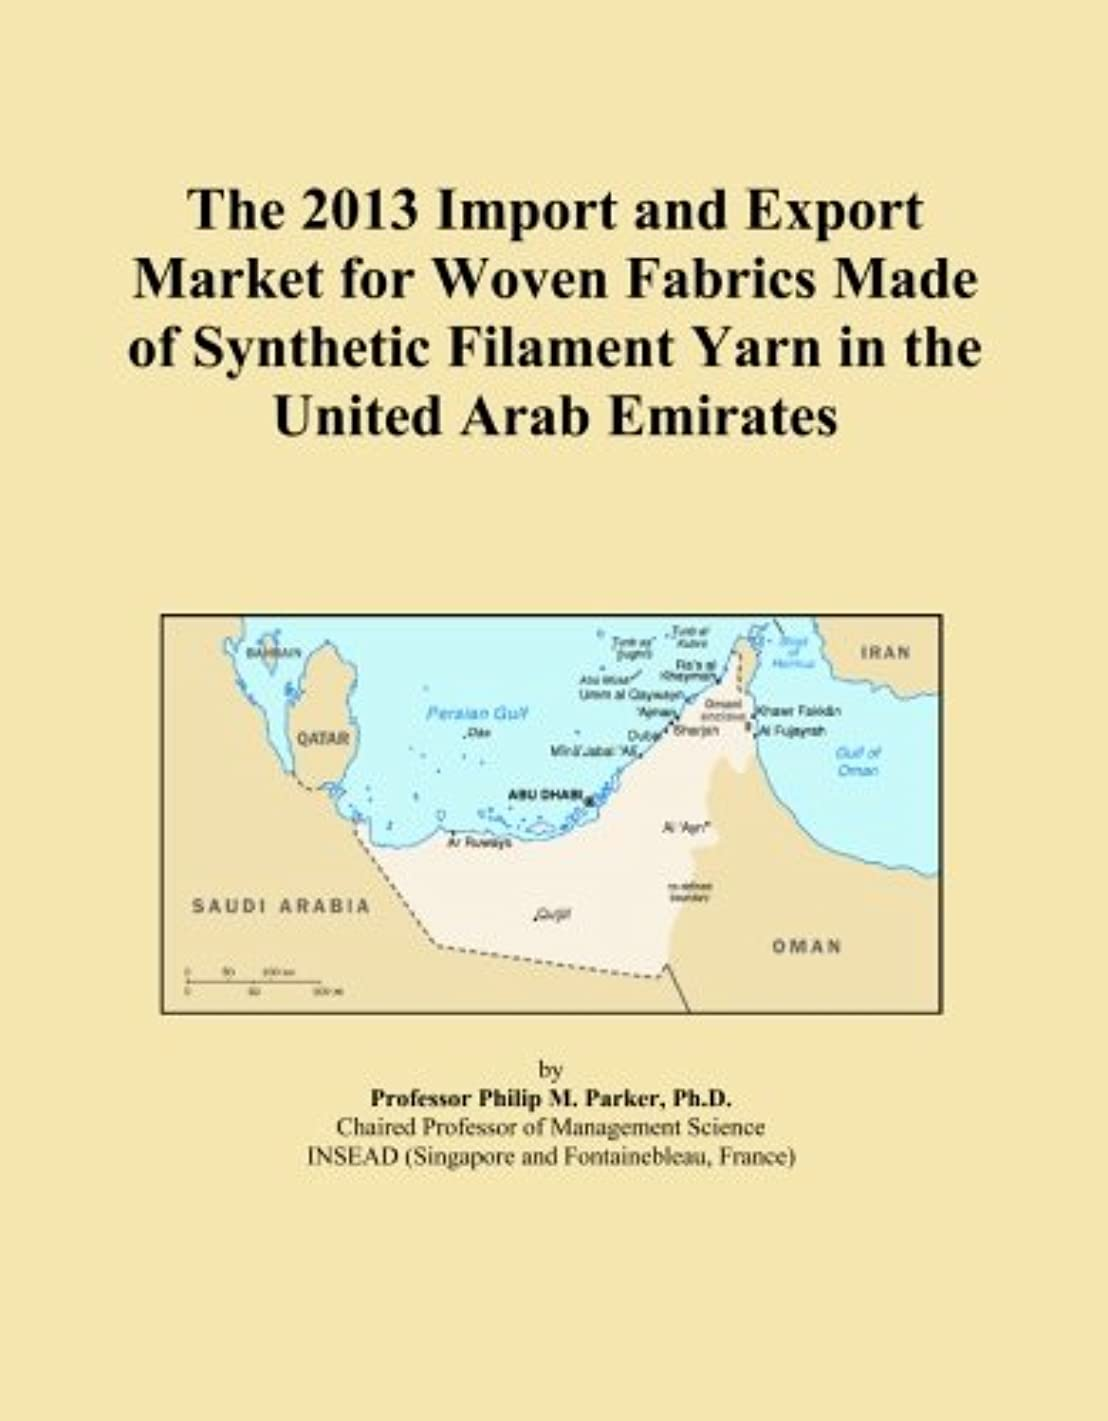 The 2013 Import and Export Market for Woven Fabrics Made of Synthetic Filament Yarn in the United Arab Emirates